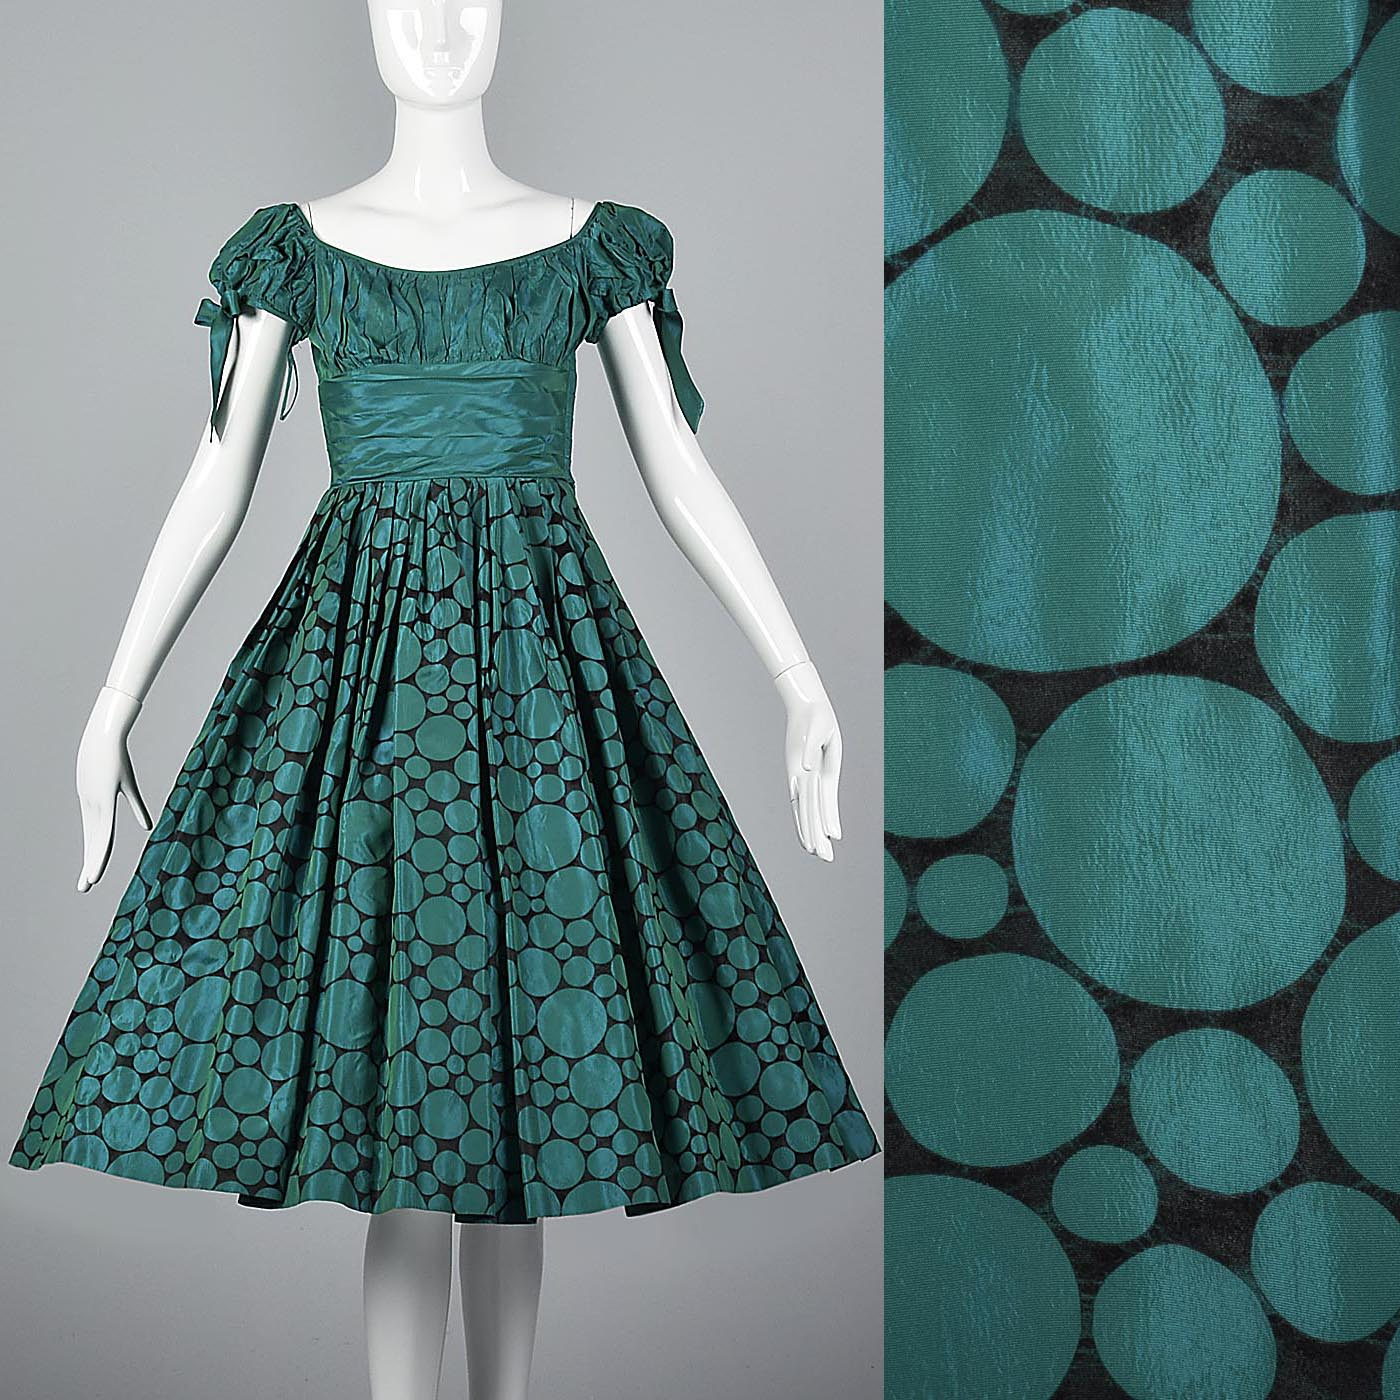 1950s Flocked Polkadot Party Dress